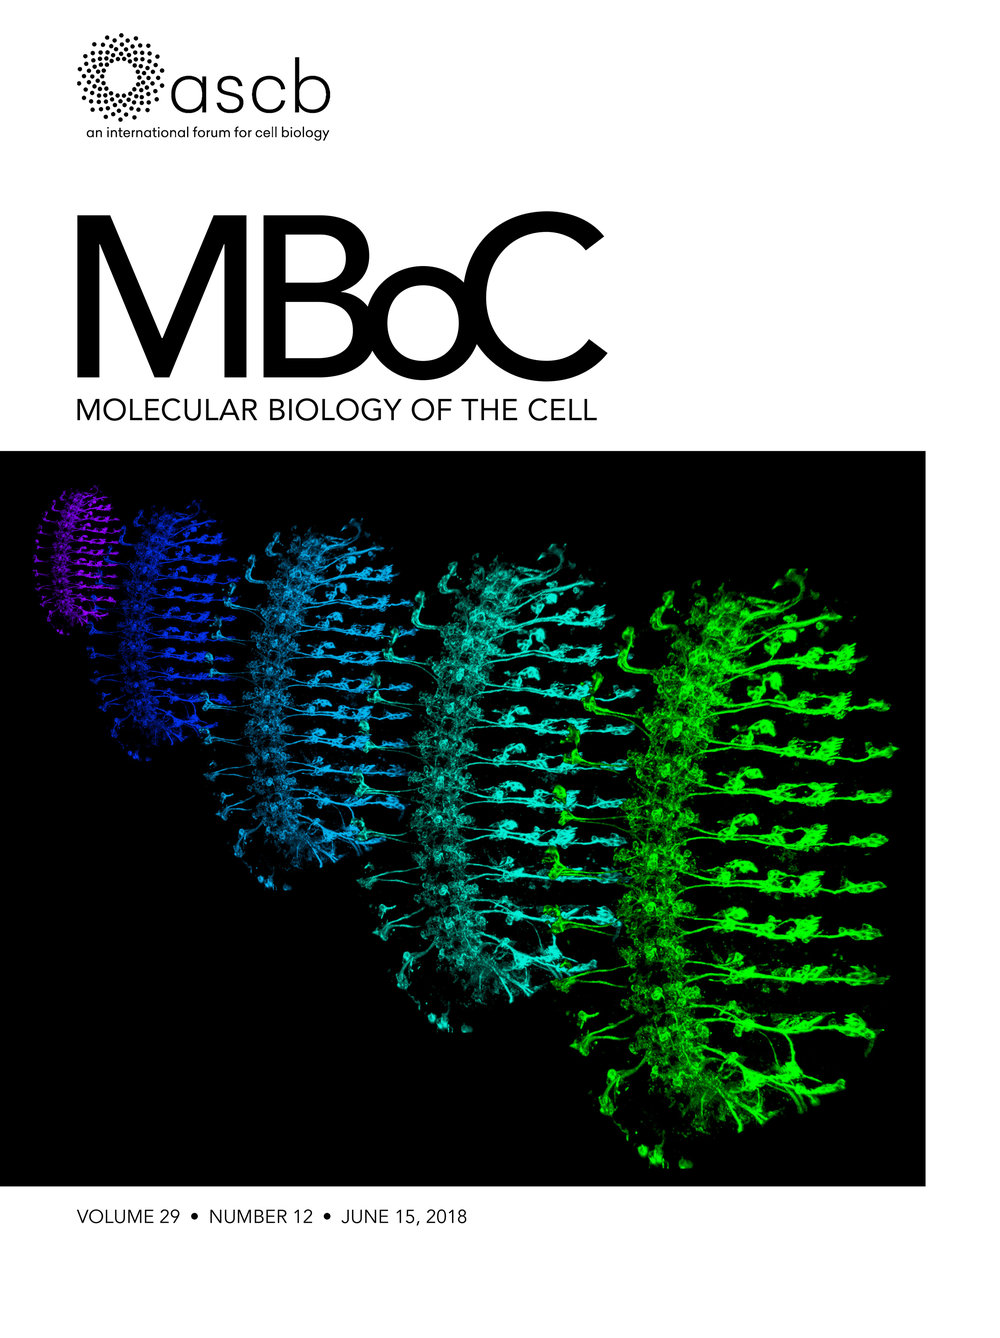 mboc.2018.29.issue-12.cover.jpg